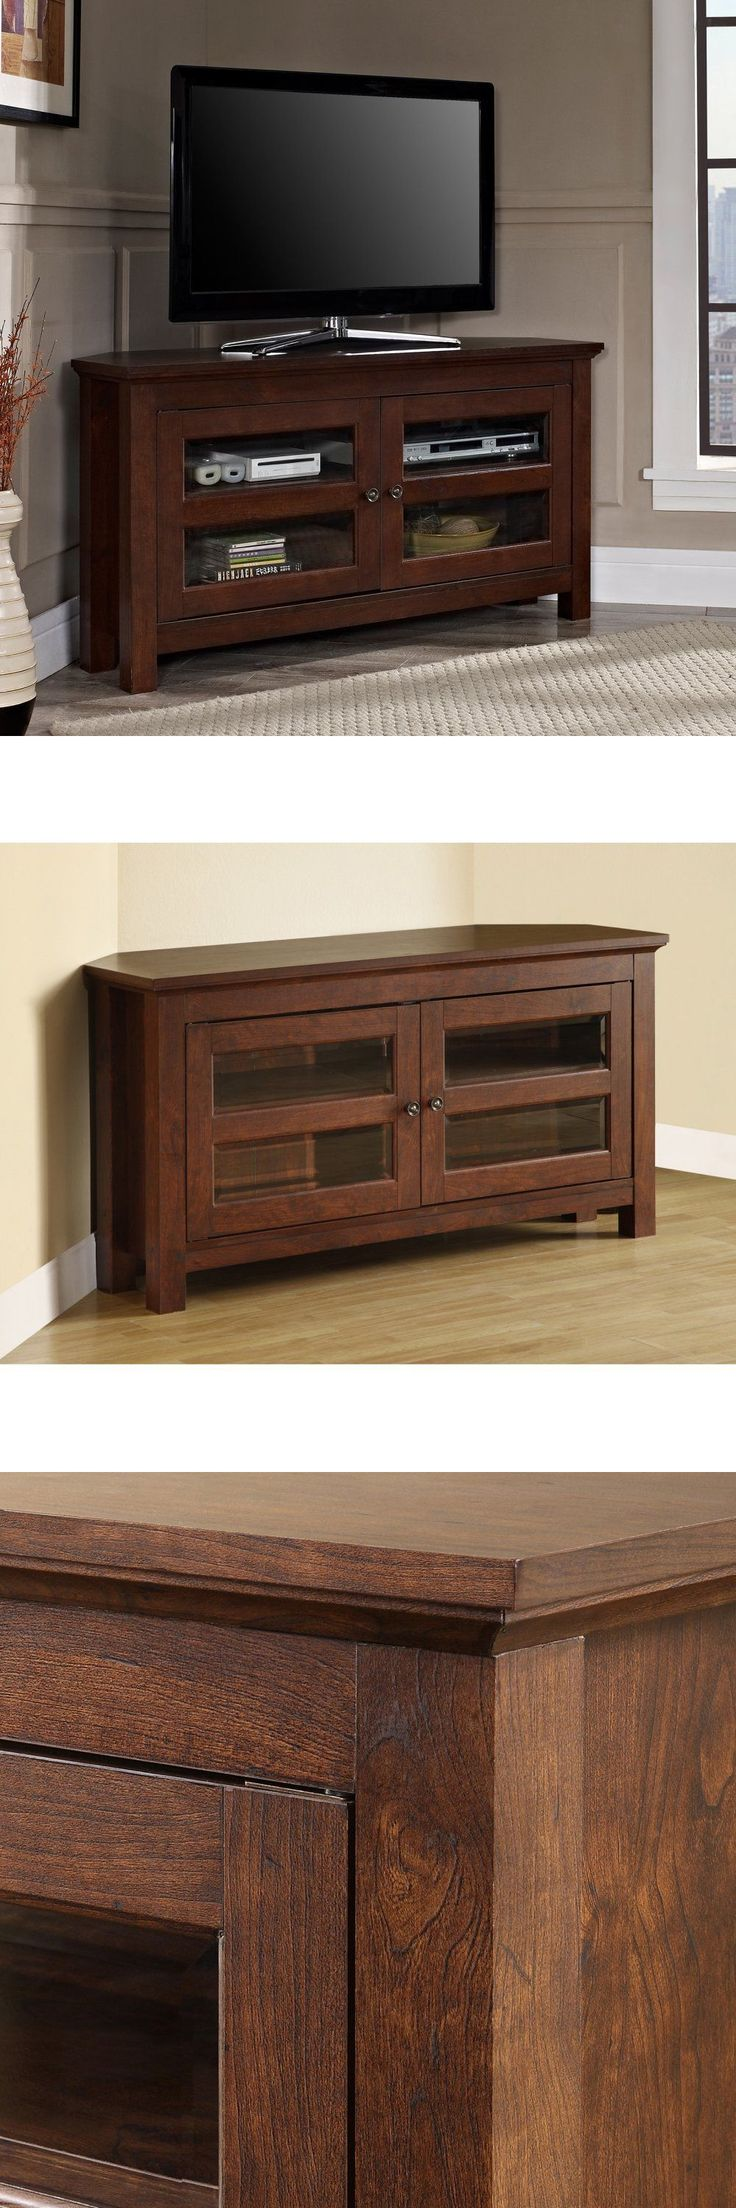 Entertainment Units TV Stands: Corner Tv Stand Entertainment Center Cabinet Storage Living Room Media Console -> BUY IT NOW ONLY: $118.44 on eBay!